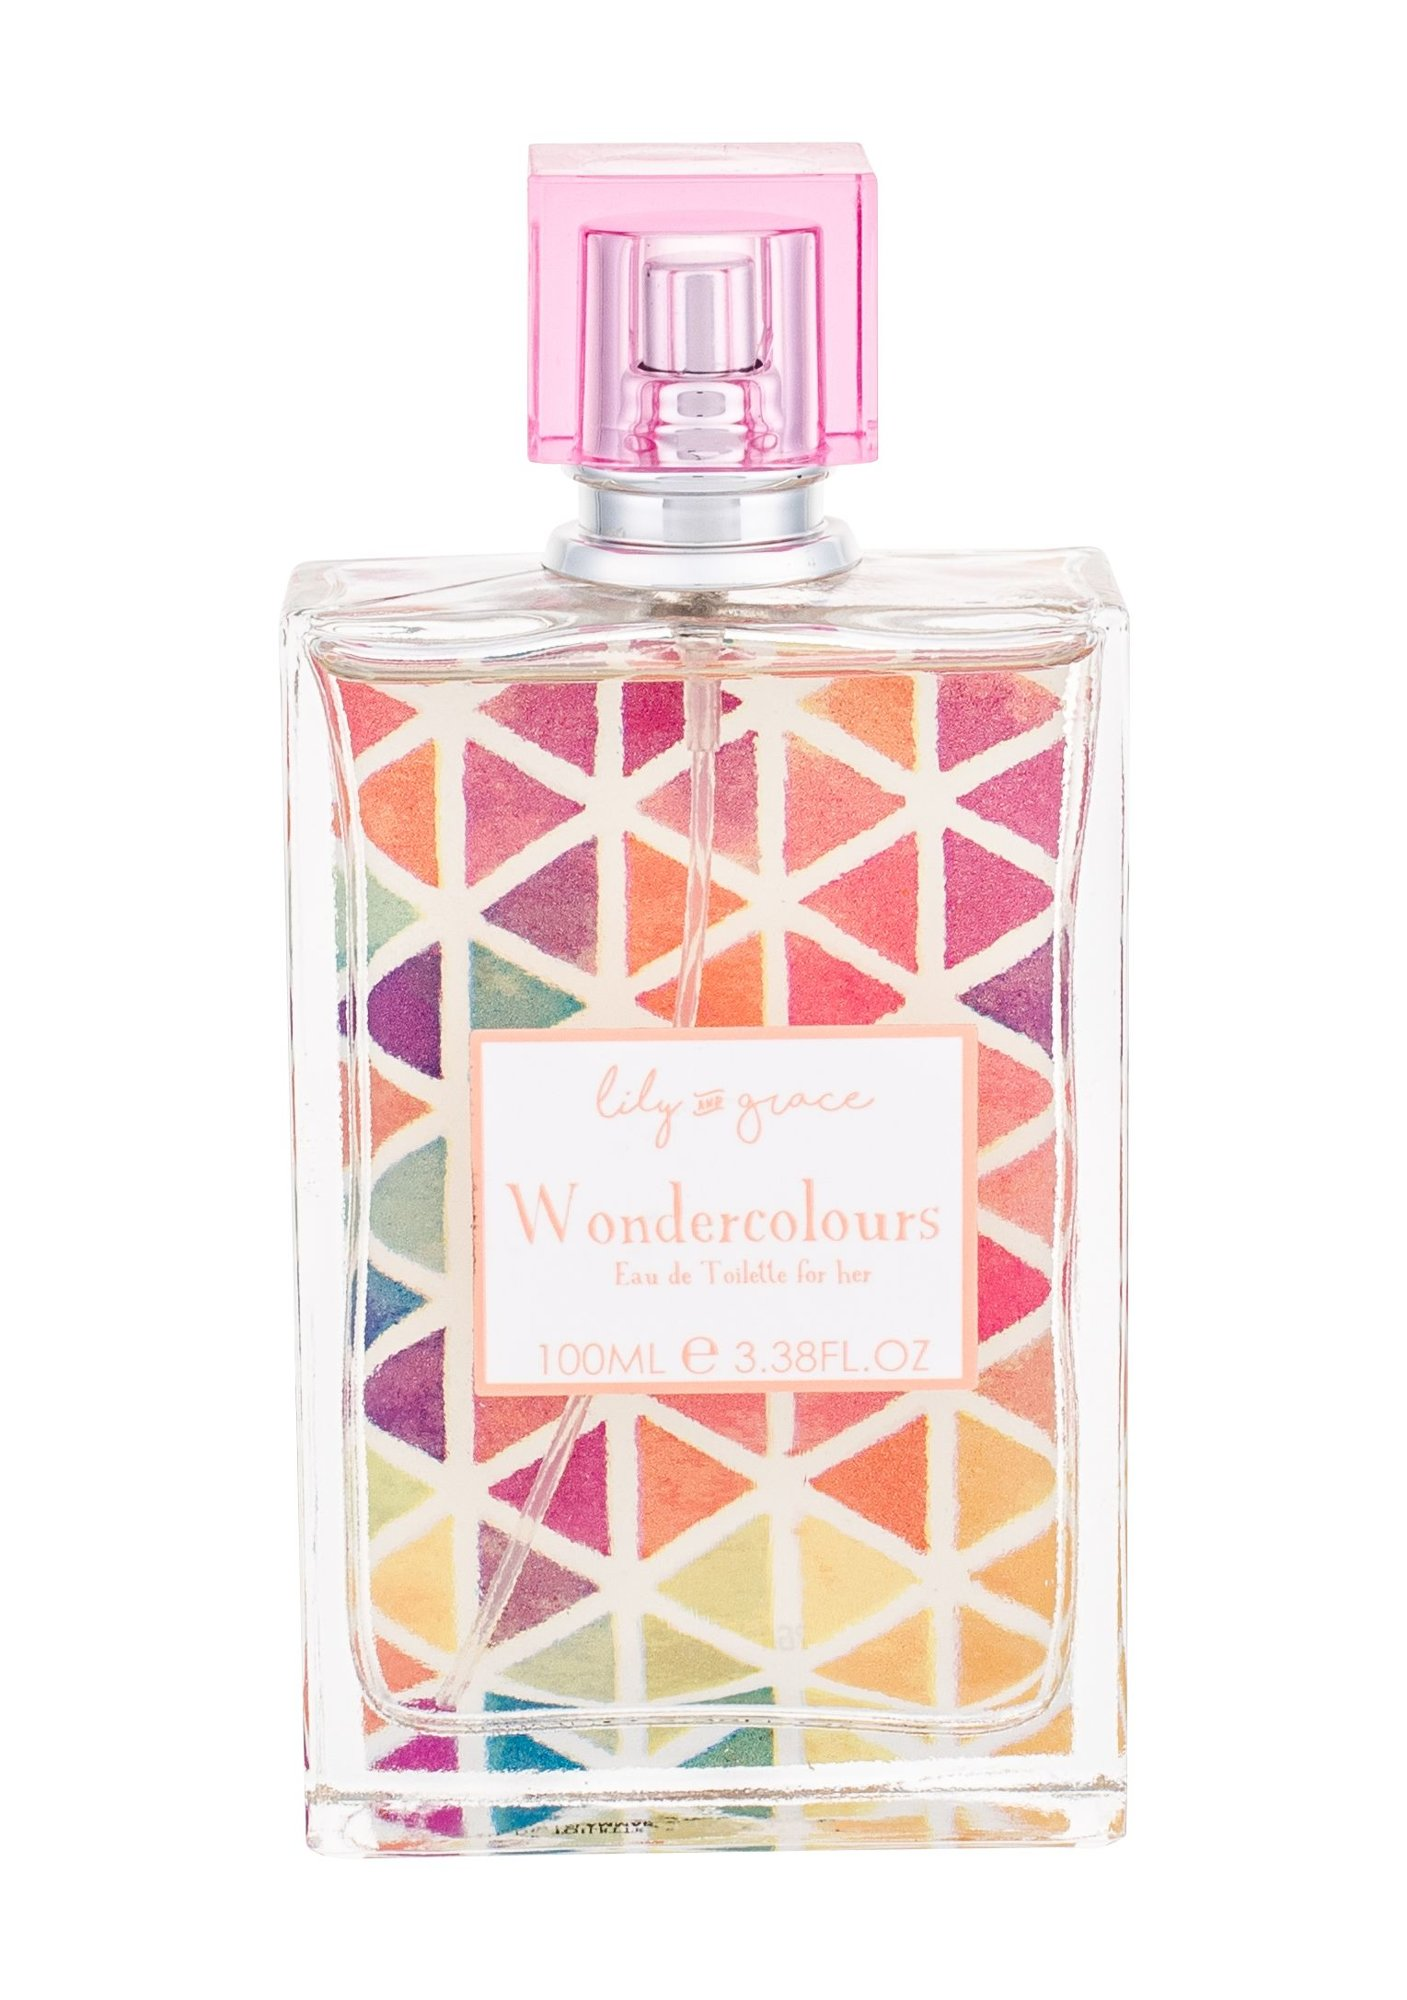 Lily and Grace Wondercolours Eau de Toilette 100ml